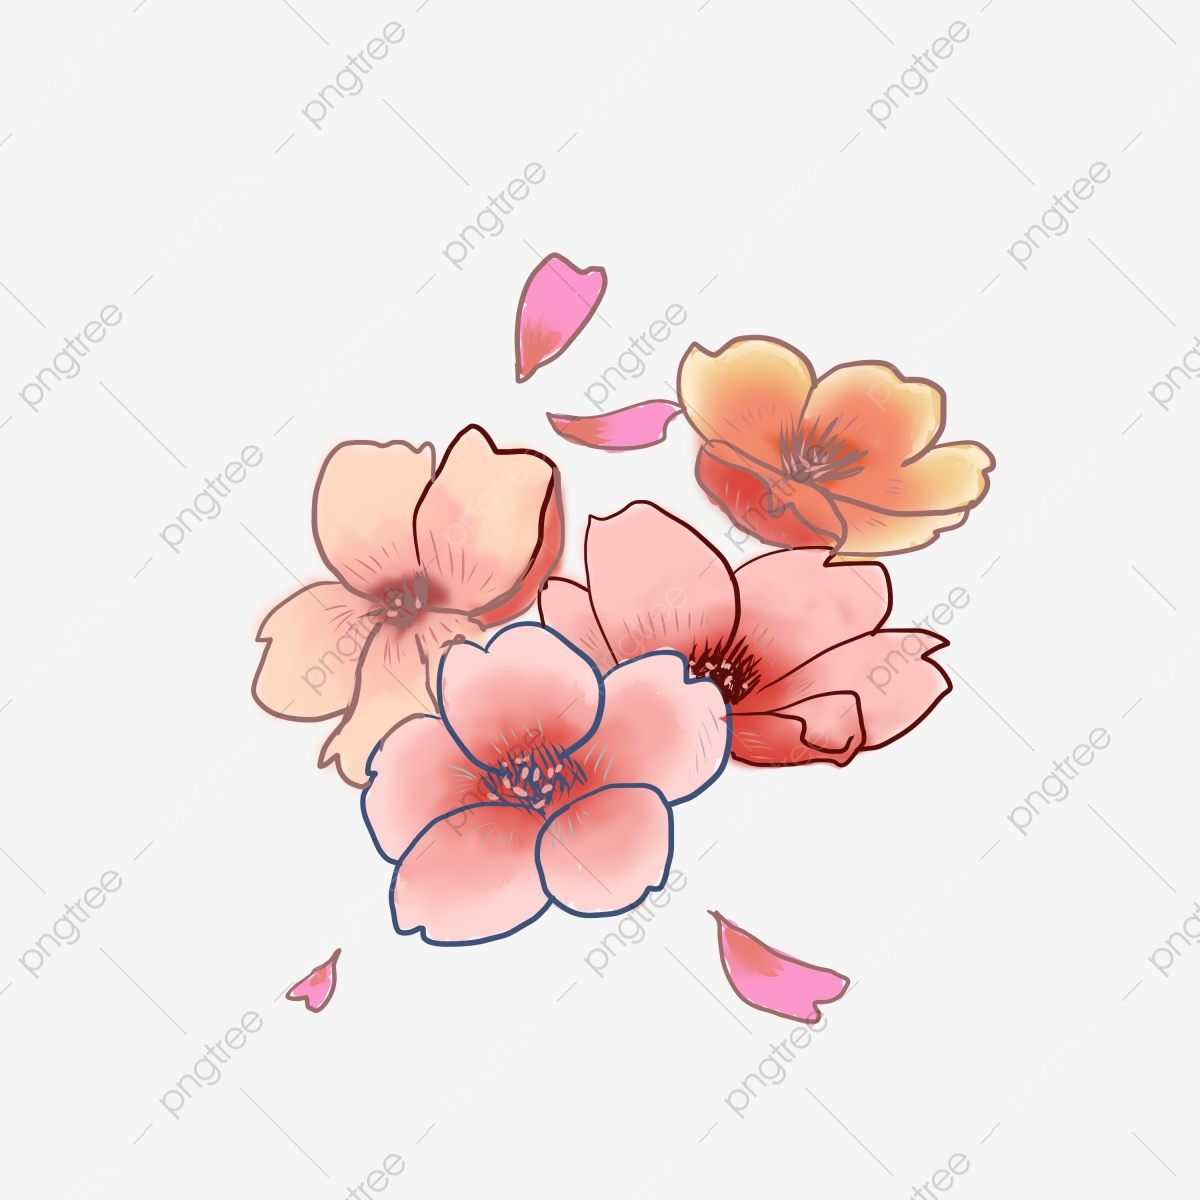 Japanese Cherry Blossom Flower Illustration Cherry Blossom Clipart Japanese Cherry Blossoms Beautiful Cherry Blossoms Png Transparent Clipart Image And Psd File For Free Download